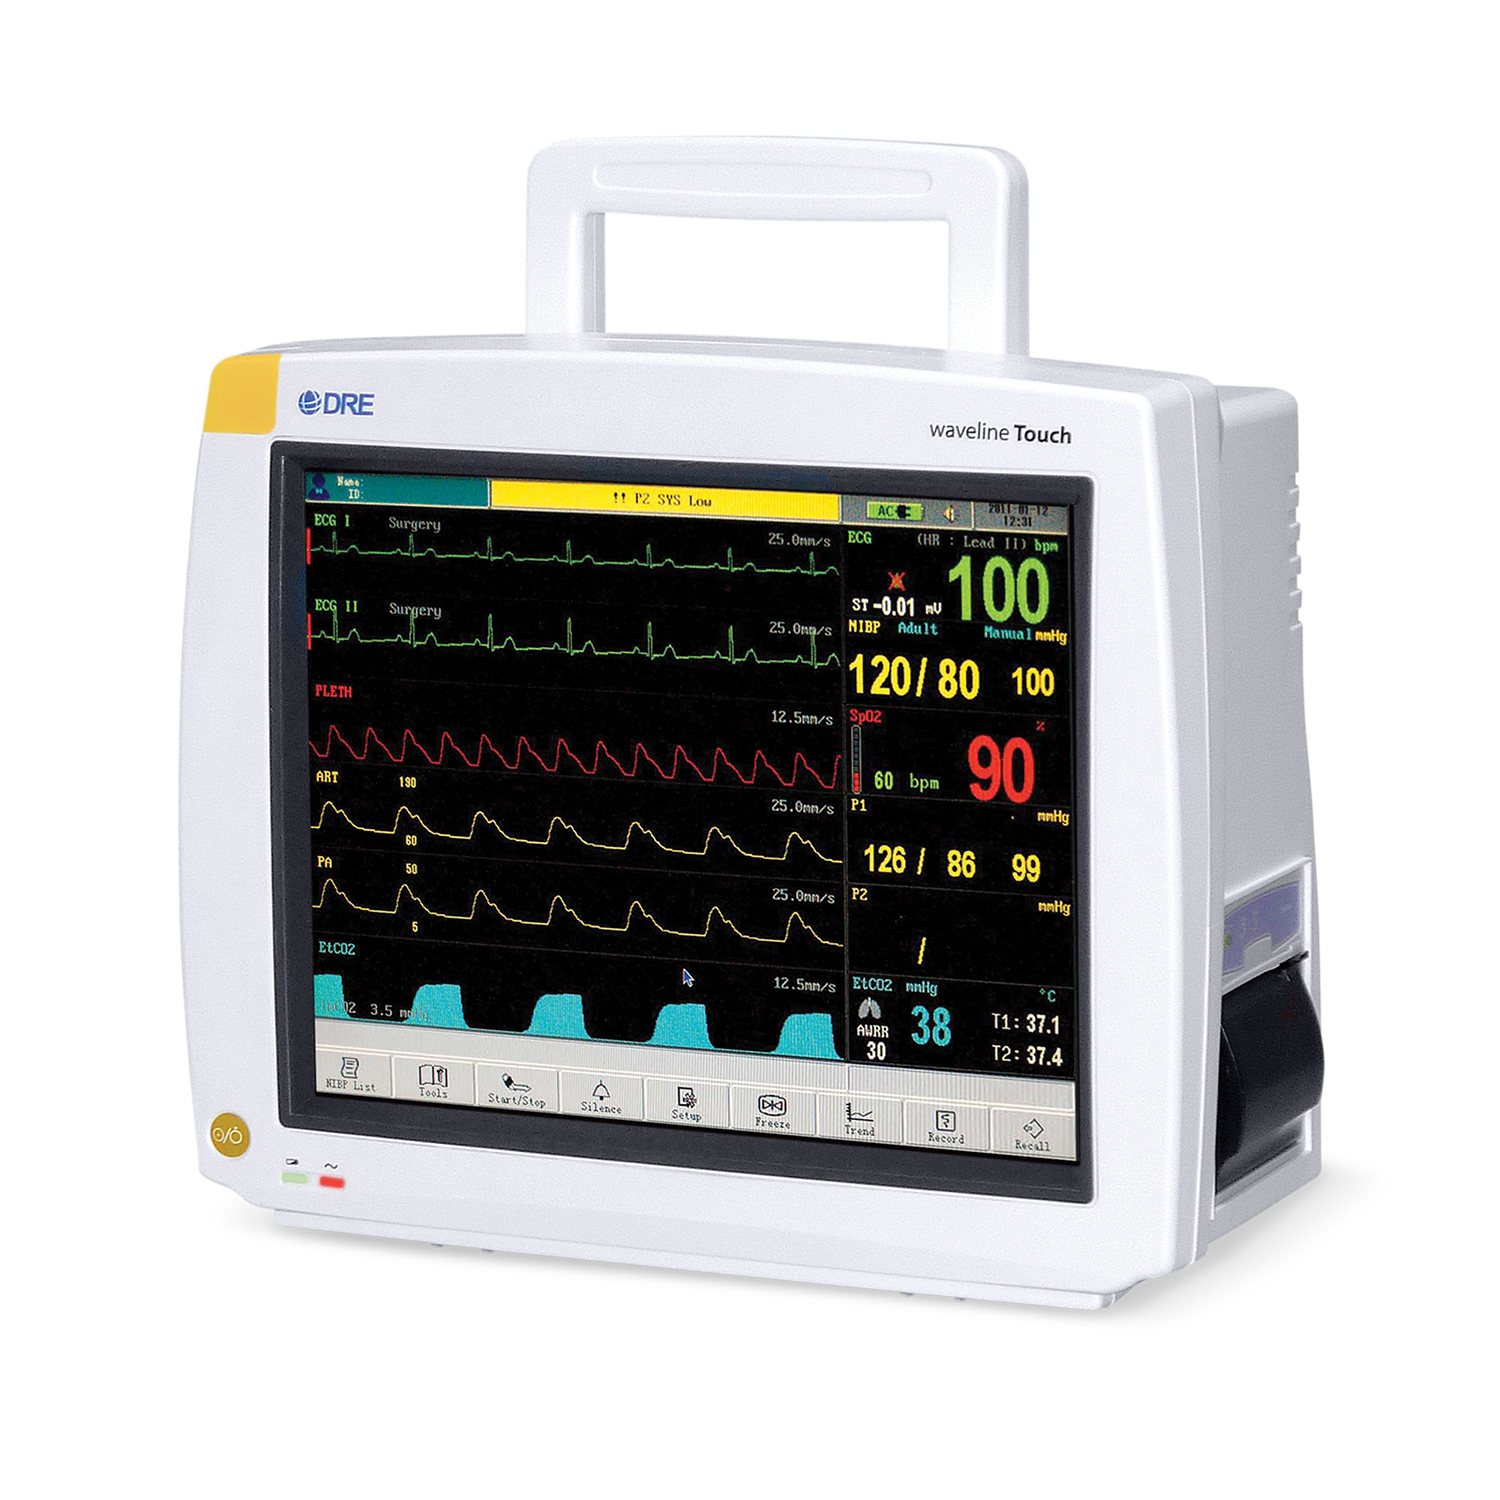 Explore the Capnography Devices Market forecast to 2026